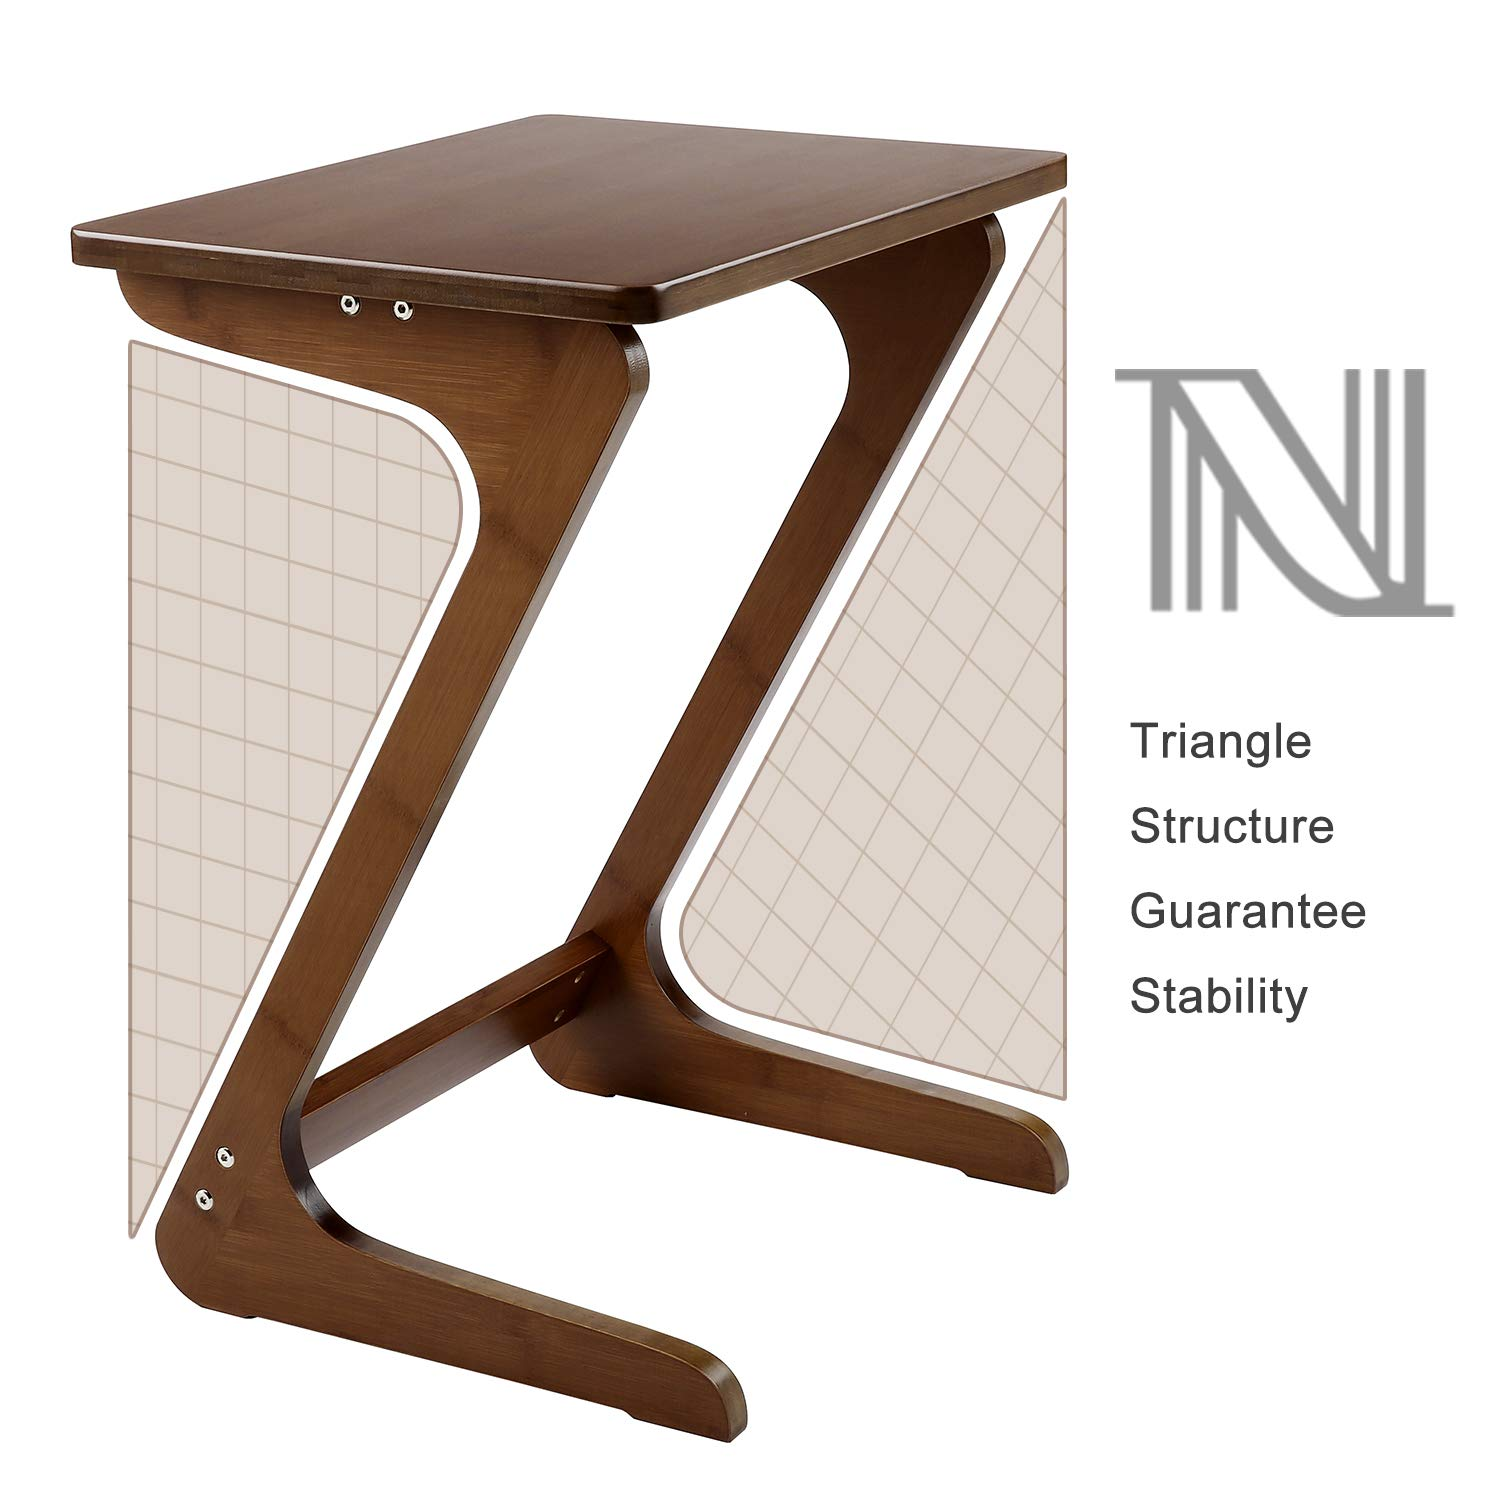 Cool Details About End Table Tv Tray Nnewvante Bamboo Sofa Table Snack Side Table Z Shape Walnut Uwap Interior Chair Design Uwaporg